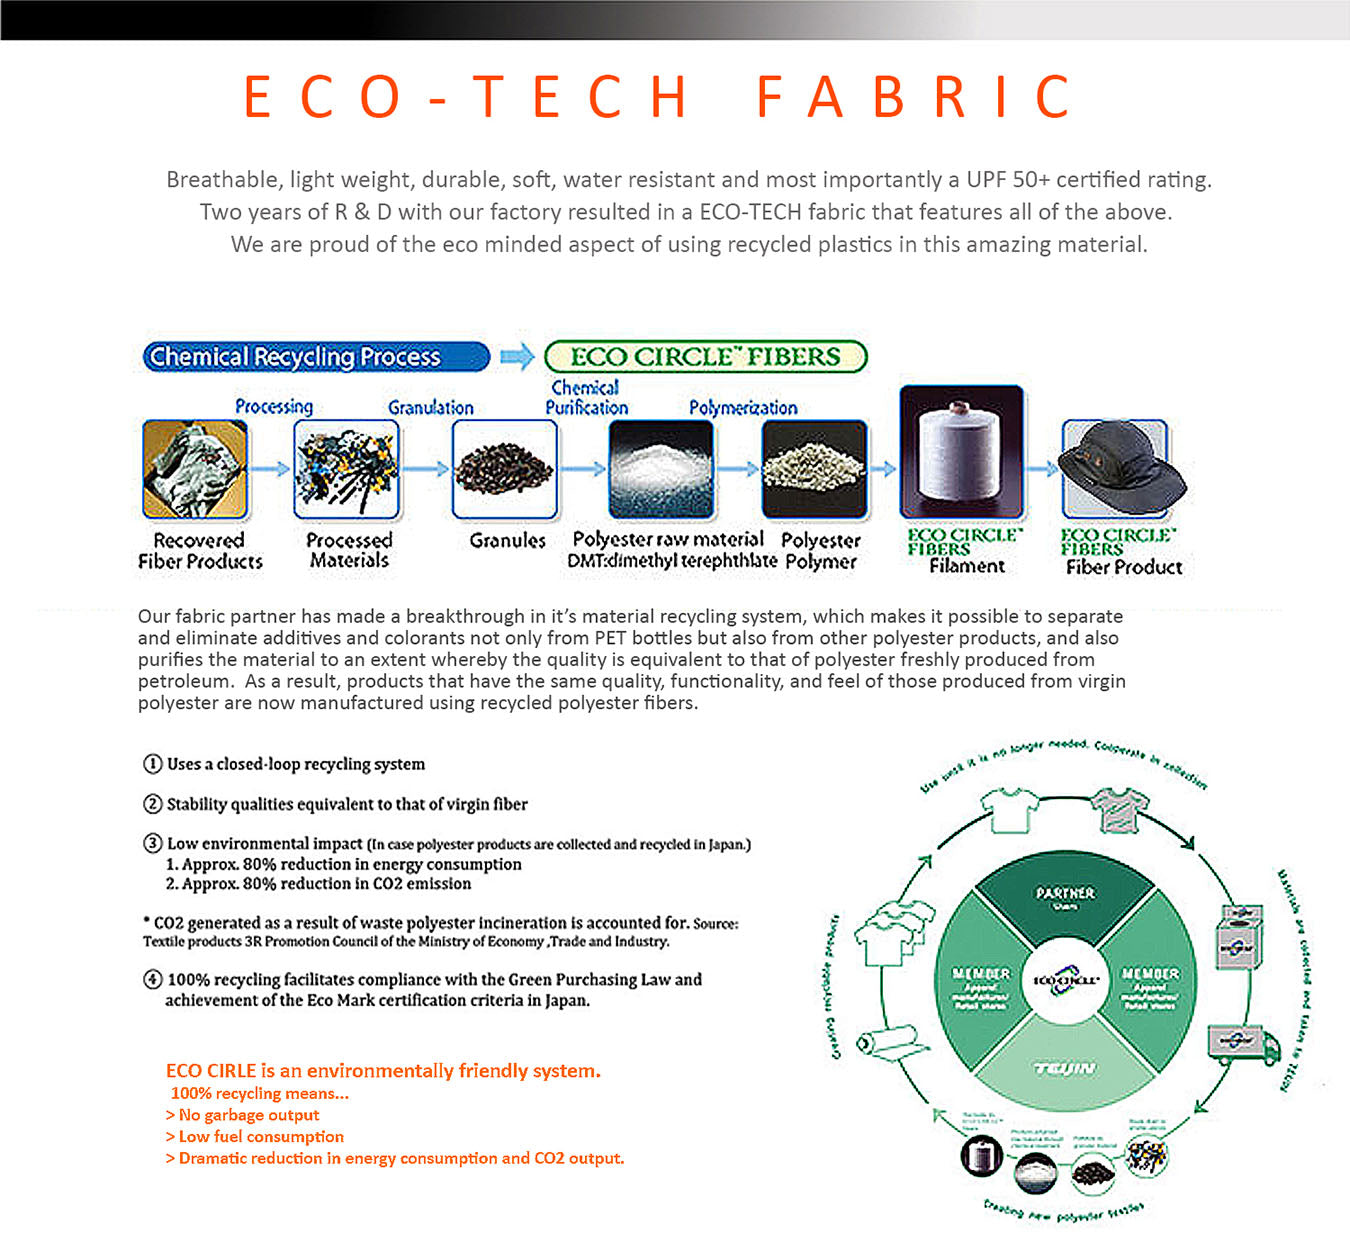 Our sun hat fabric partner has made a breakthrough in its material recycling system,which makes it possible to separate and eliminate additives and colorants not only from PET bottles but also from other polyester products,and also purifies the material to an extent whereby the quality is equivalent to that of polyester freshly produced from petroleum. As a result, products that have the same quality, functionality, and feel of those produced from virgin polyester are now manufactured using recycled polyester fibers. We use this technology in our sun hats.